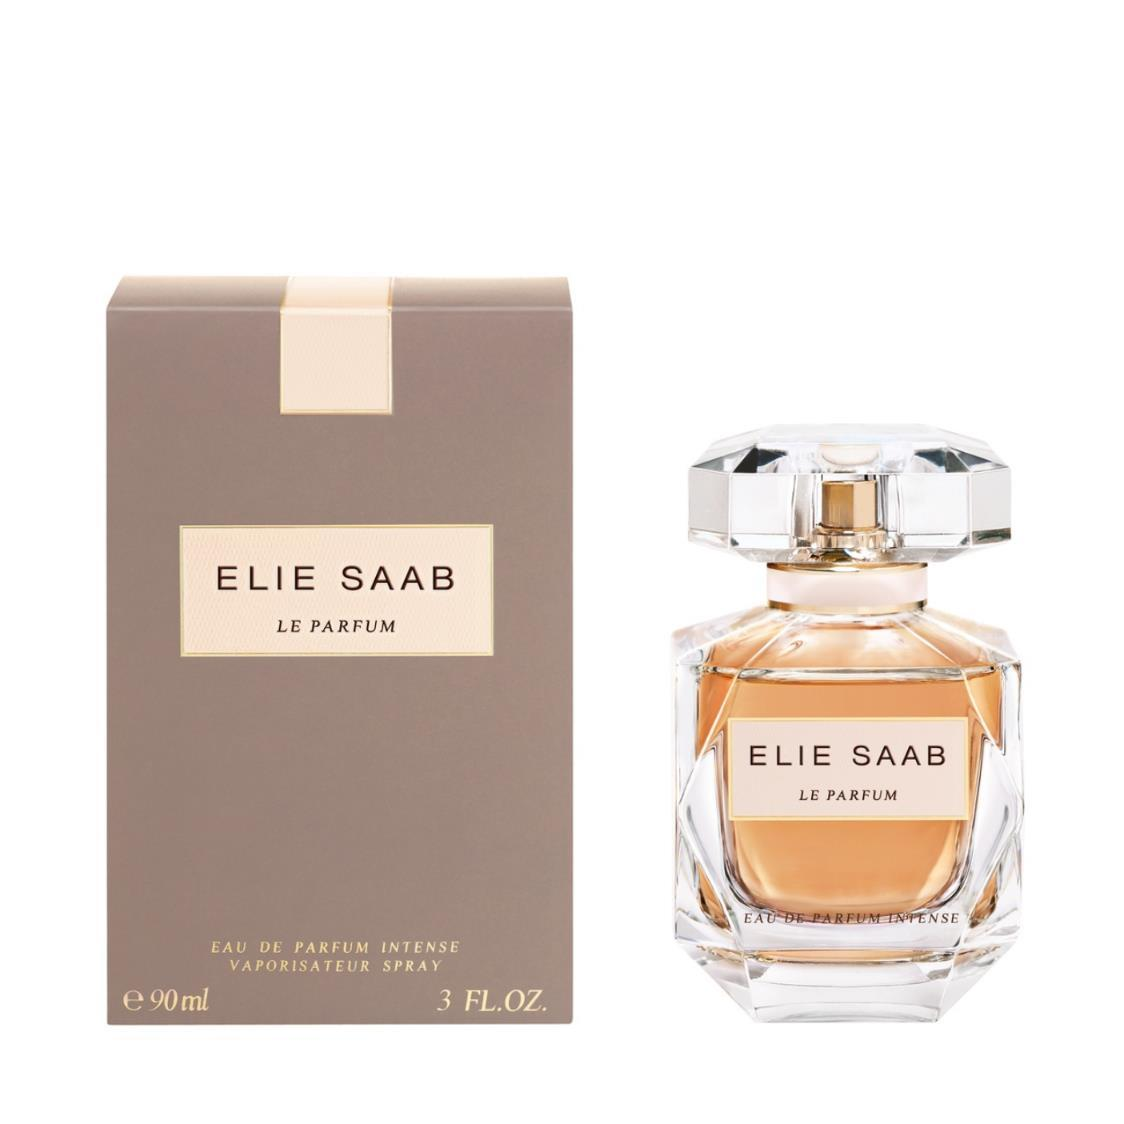 Elie Saab Le Parfum EDP Intense Spray 90ml